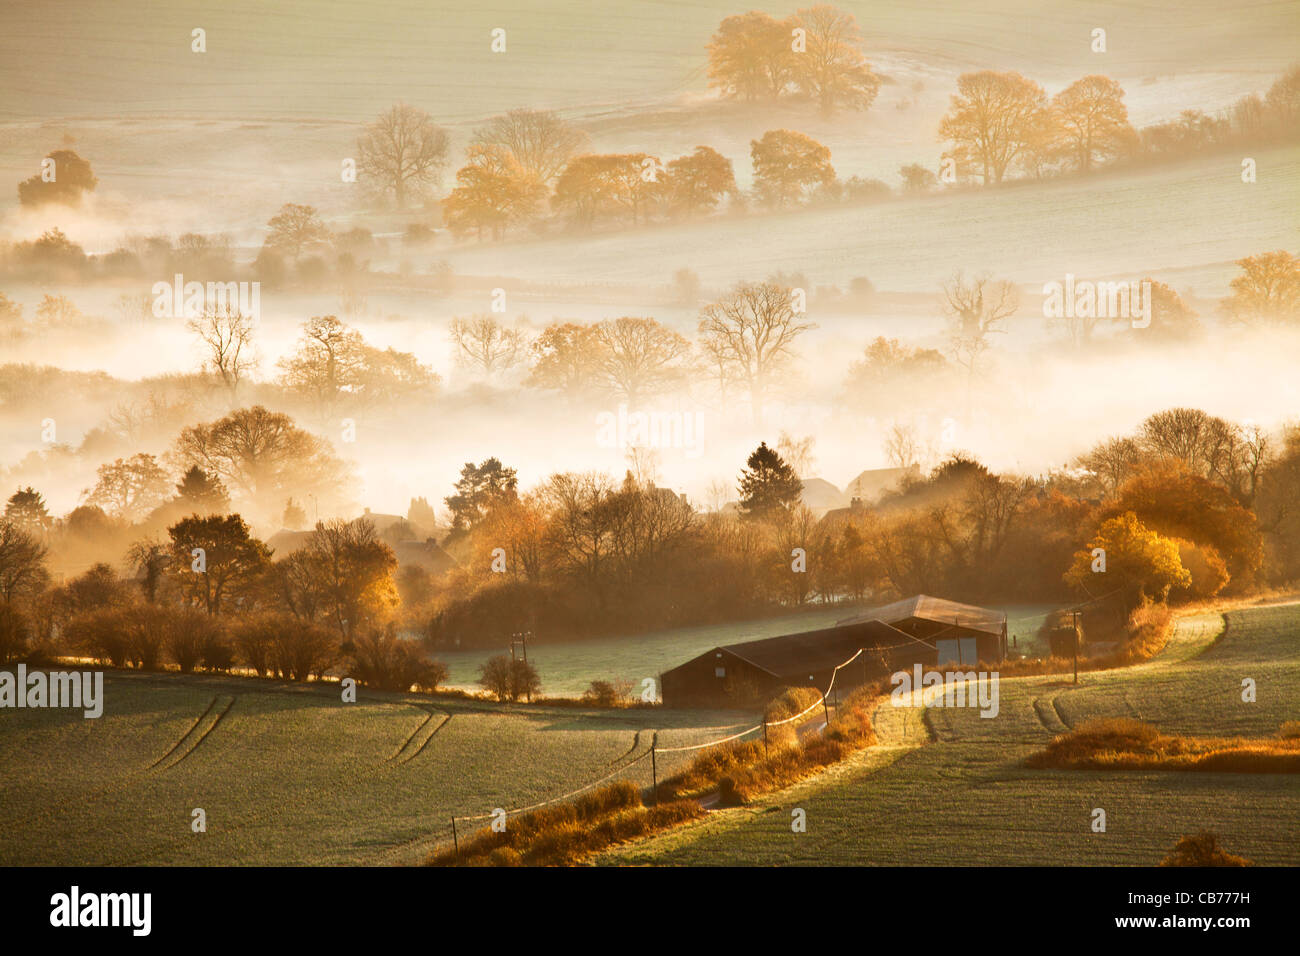 Anautumn sunrise view from Martinsell Hill over the Vale of Pewsey in Wiltshire, England, UK - Stock Image